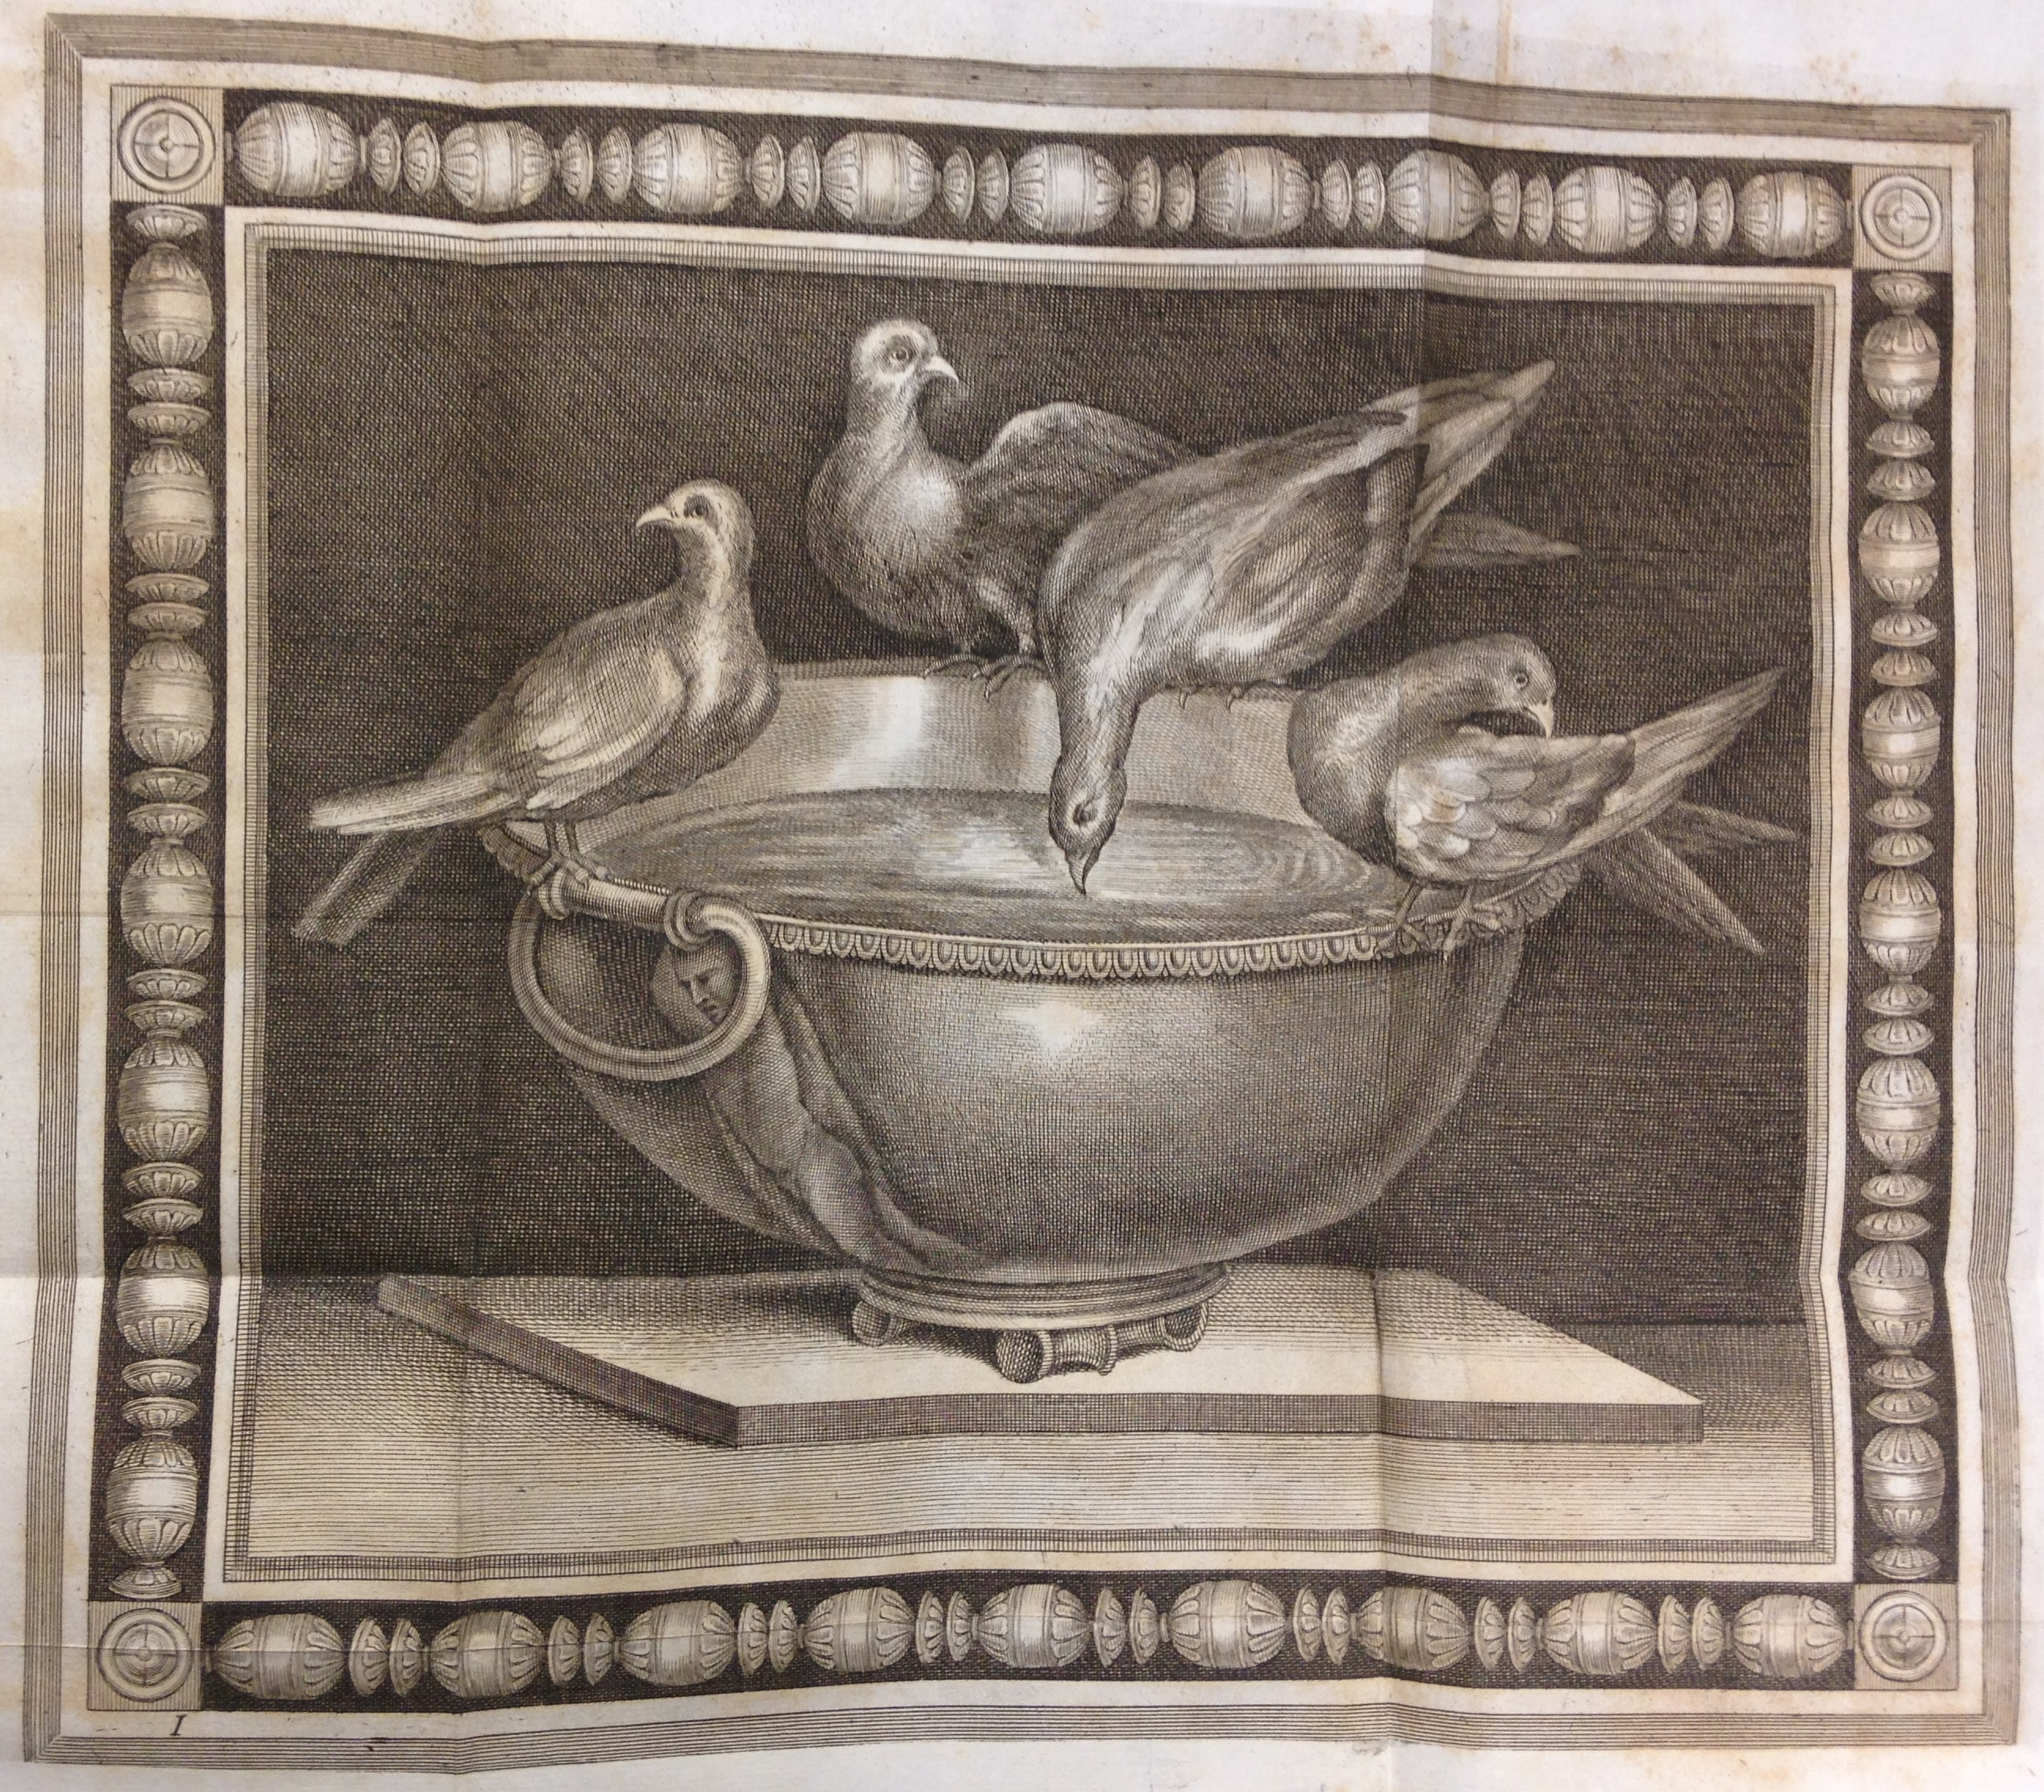 Engraved reproduction of the famous Dove Mosaic discovered by Giuseppe Alessandro Furietti at Hadrian's Villa and now in Rome's Capitoline Museum. Furietti believed it to be the actual mosaic created by Sosus for the royal palace at Pergamon, as described by Pliny the Elder in his Natural History. Giuseppe Alessandro Furietti, De musivis (Rome, 1752), plate [1].   (NA3750 .F8 1752)